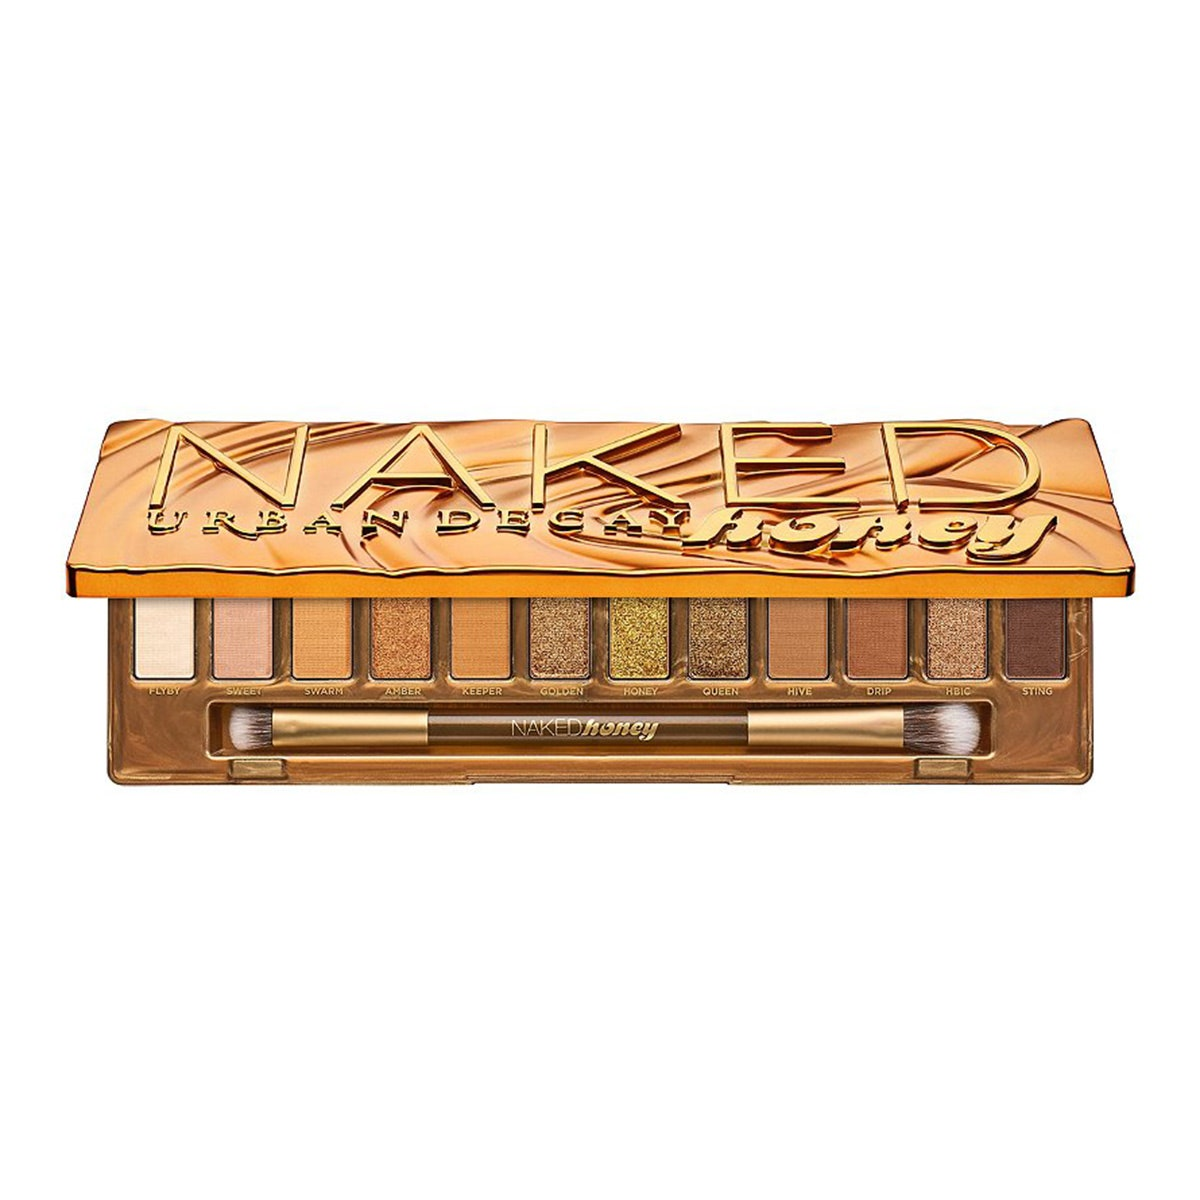 urban decay naked honey eyeshadow palette _ eyeshadow palette with warm brown and neutral shades